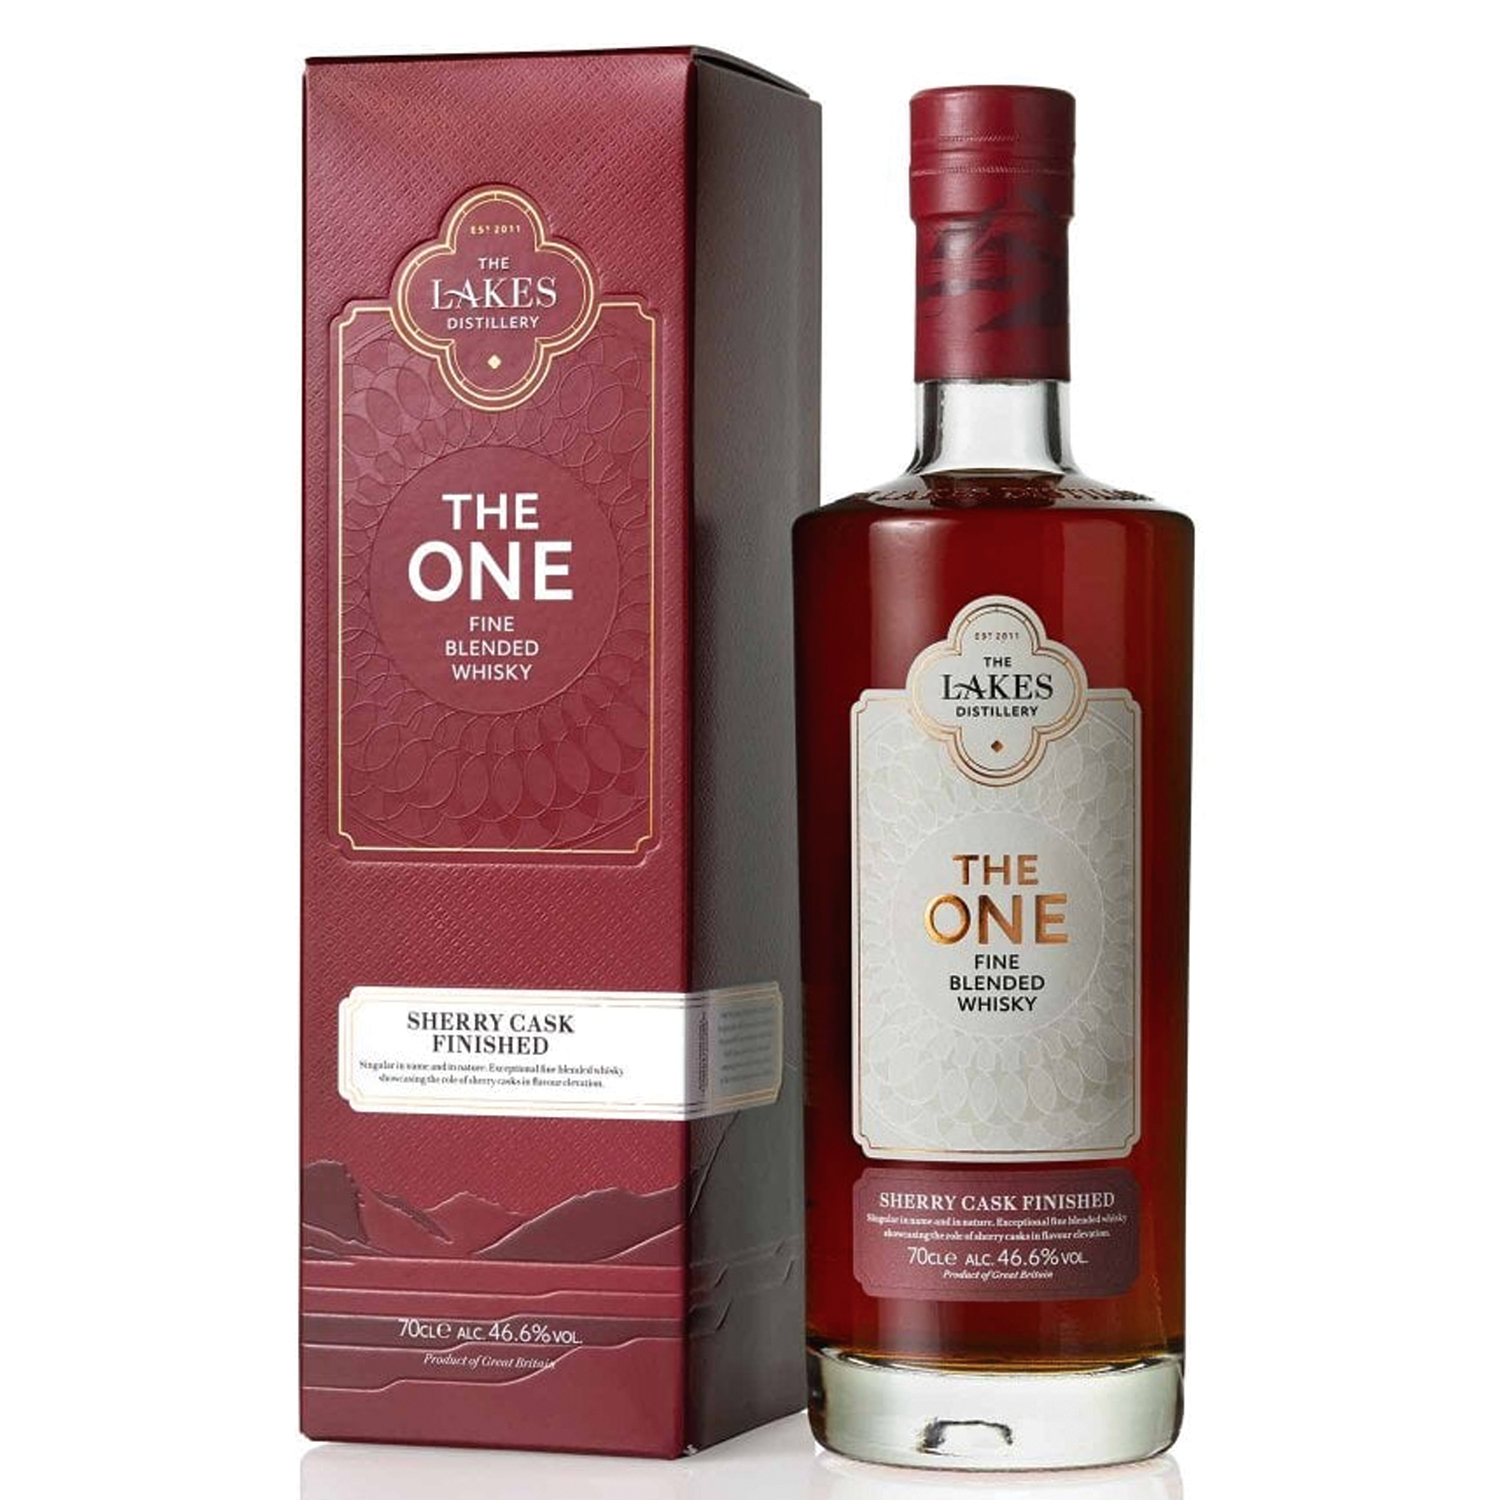 Whisky - The Lakes - The One - Sherry Cask Finished - Fine Blended - Angleterre